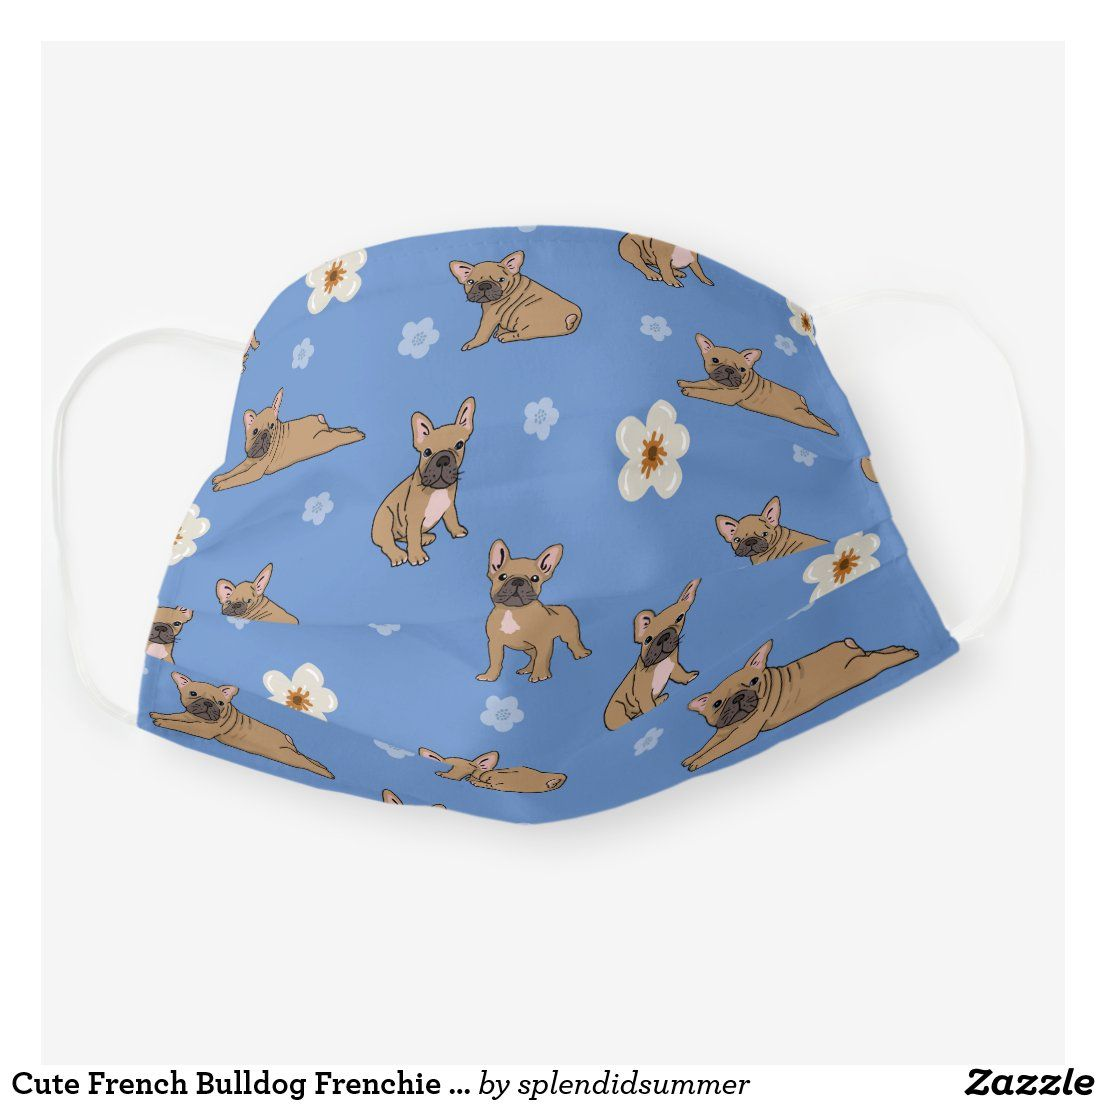 Cute French Bulldog Frenchie Cloth Cloth Face Mask Zazzle Com Cute French Bulldog French Bulldog Cute